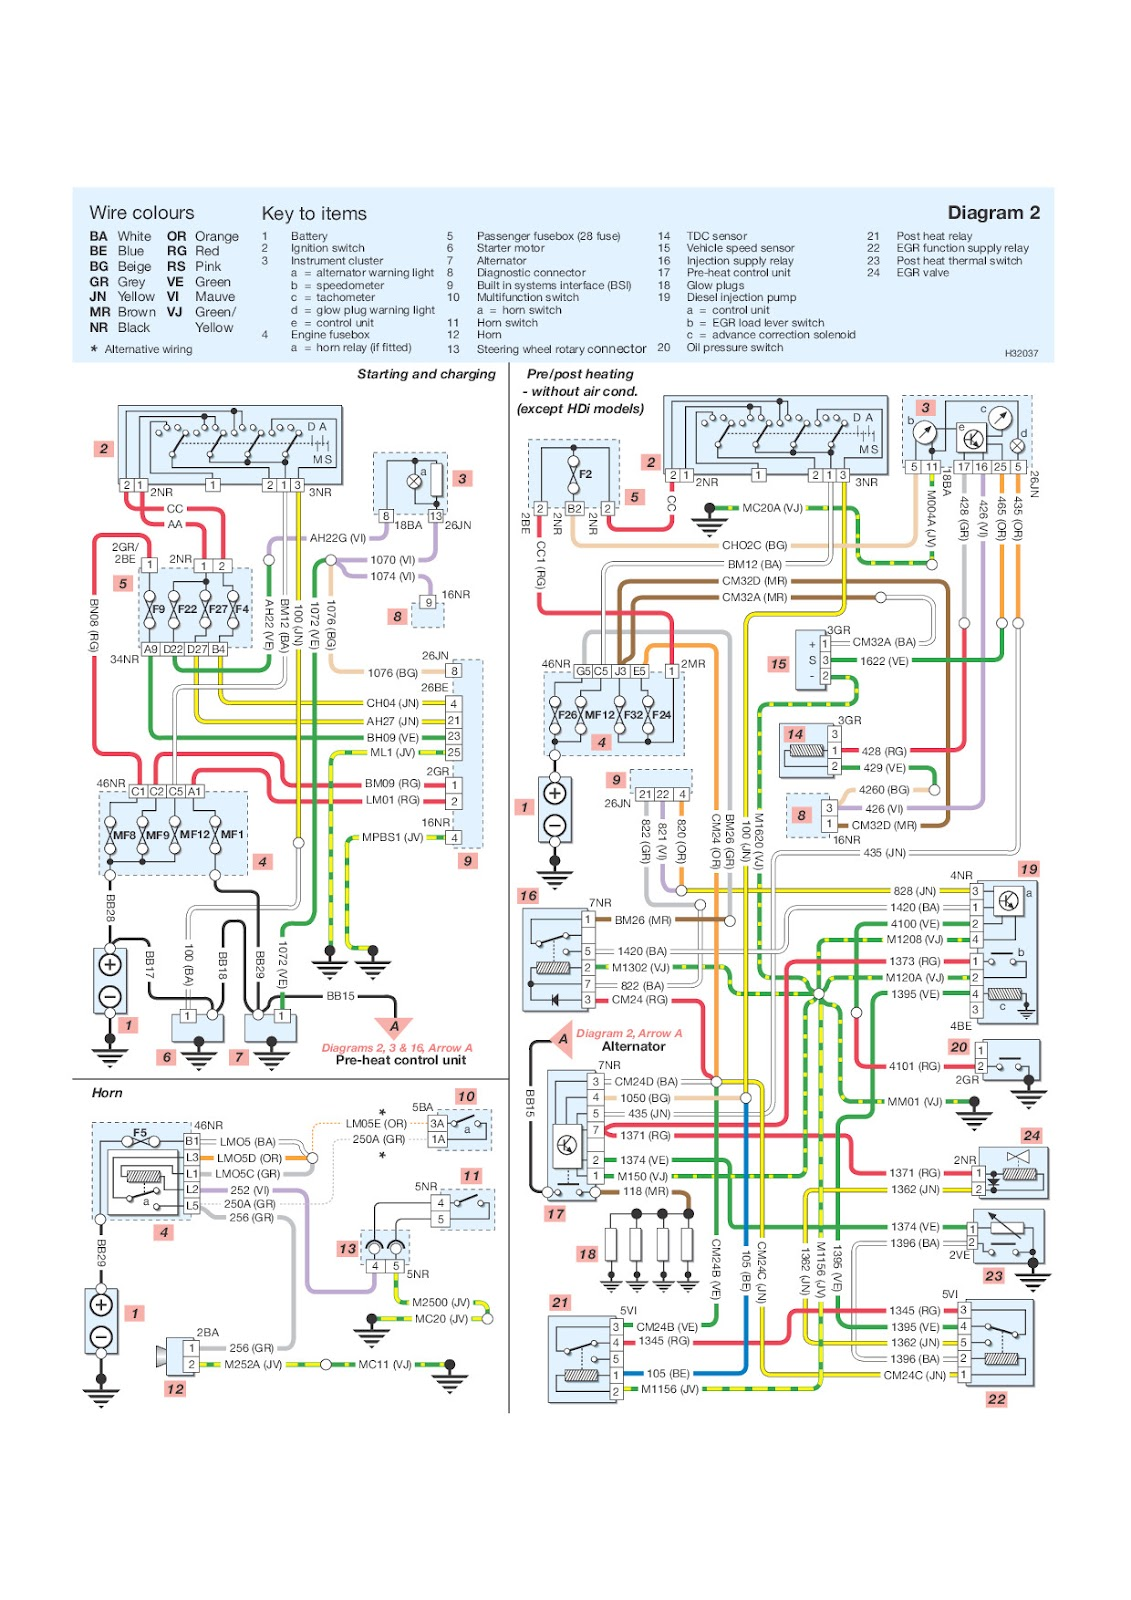 peugeot+206 1 1995 b tracker wiring diagram schematic wiring diagram simonand  at arjmand.co